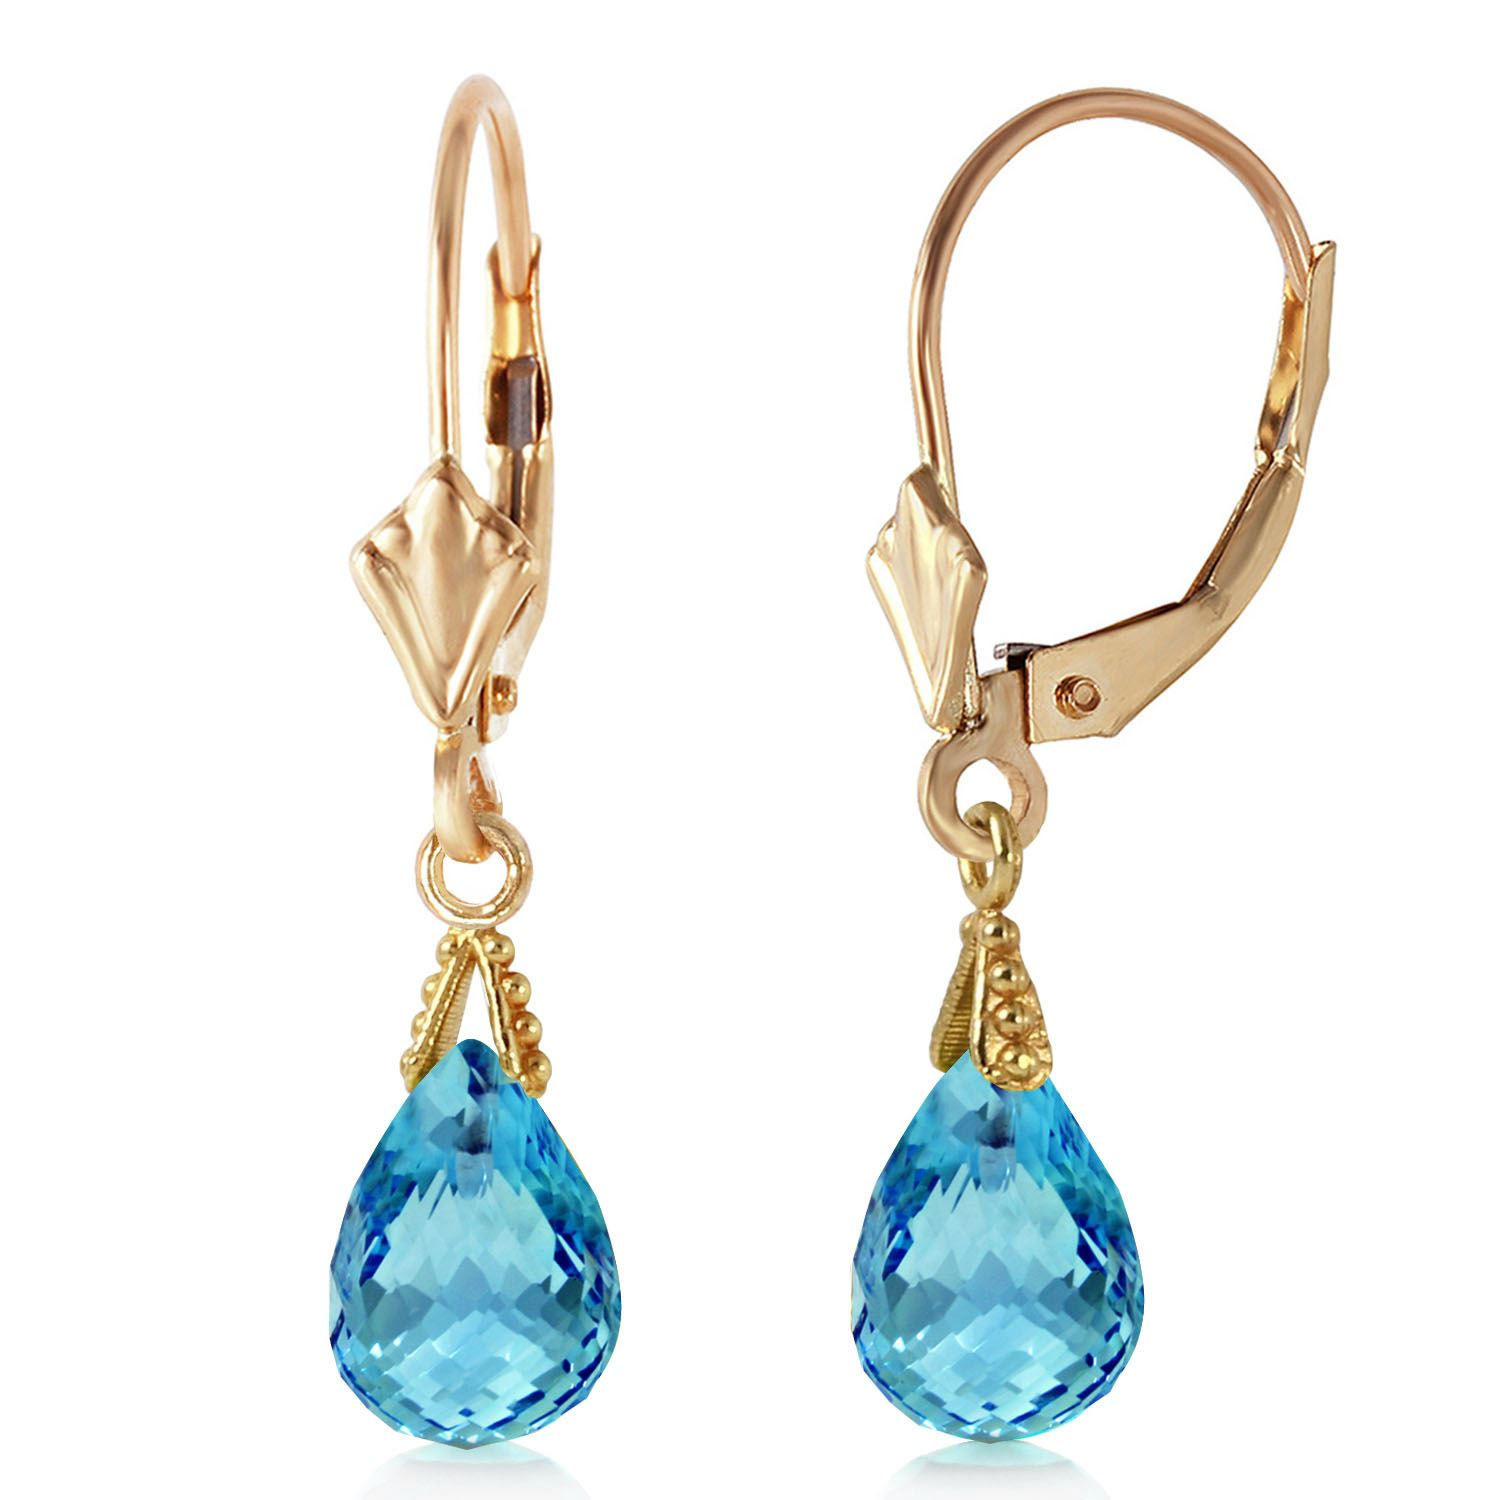 buy earrings gemstone bold product stone adiva blue ocean